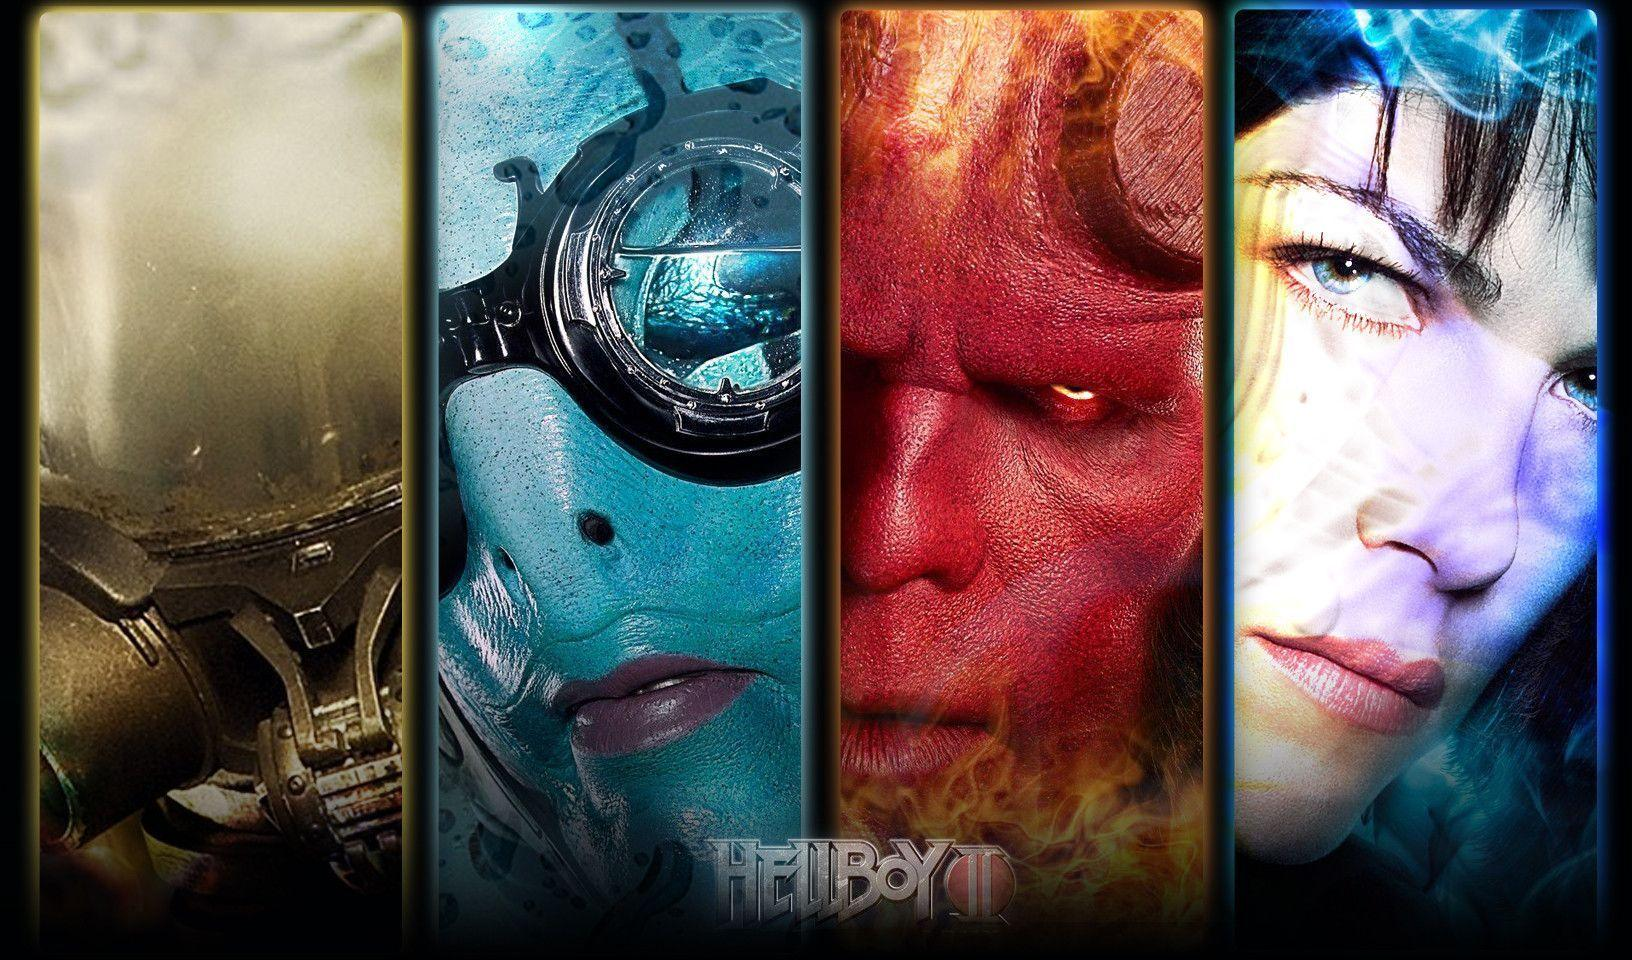 Hellboy 2 Wallpapers (Wallpaper 1-3 of 3)